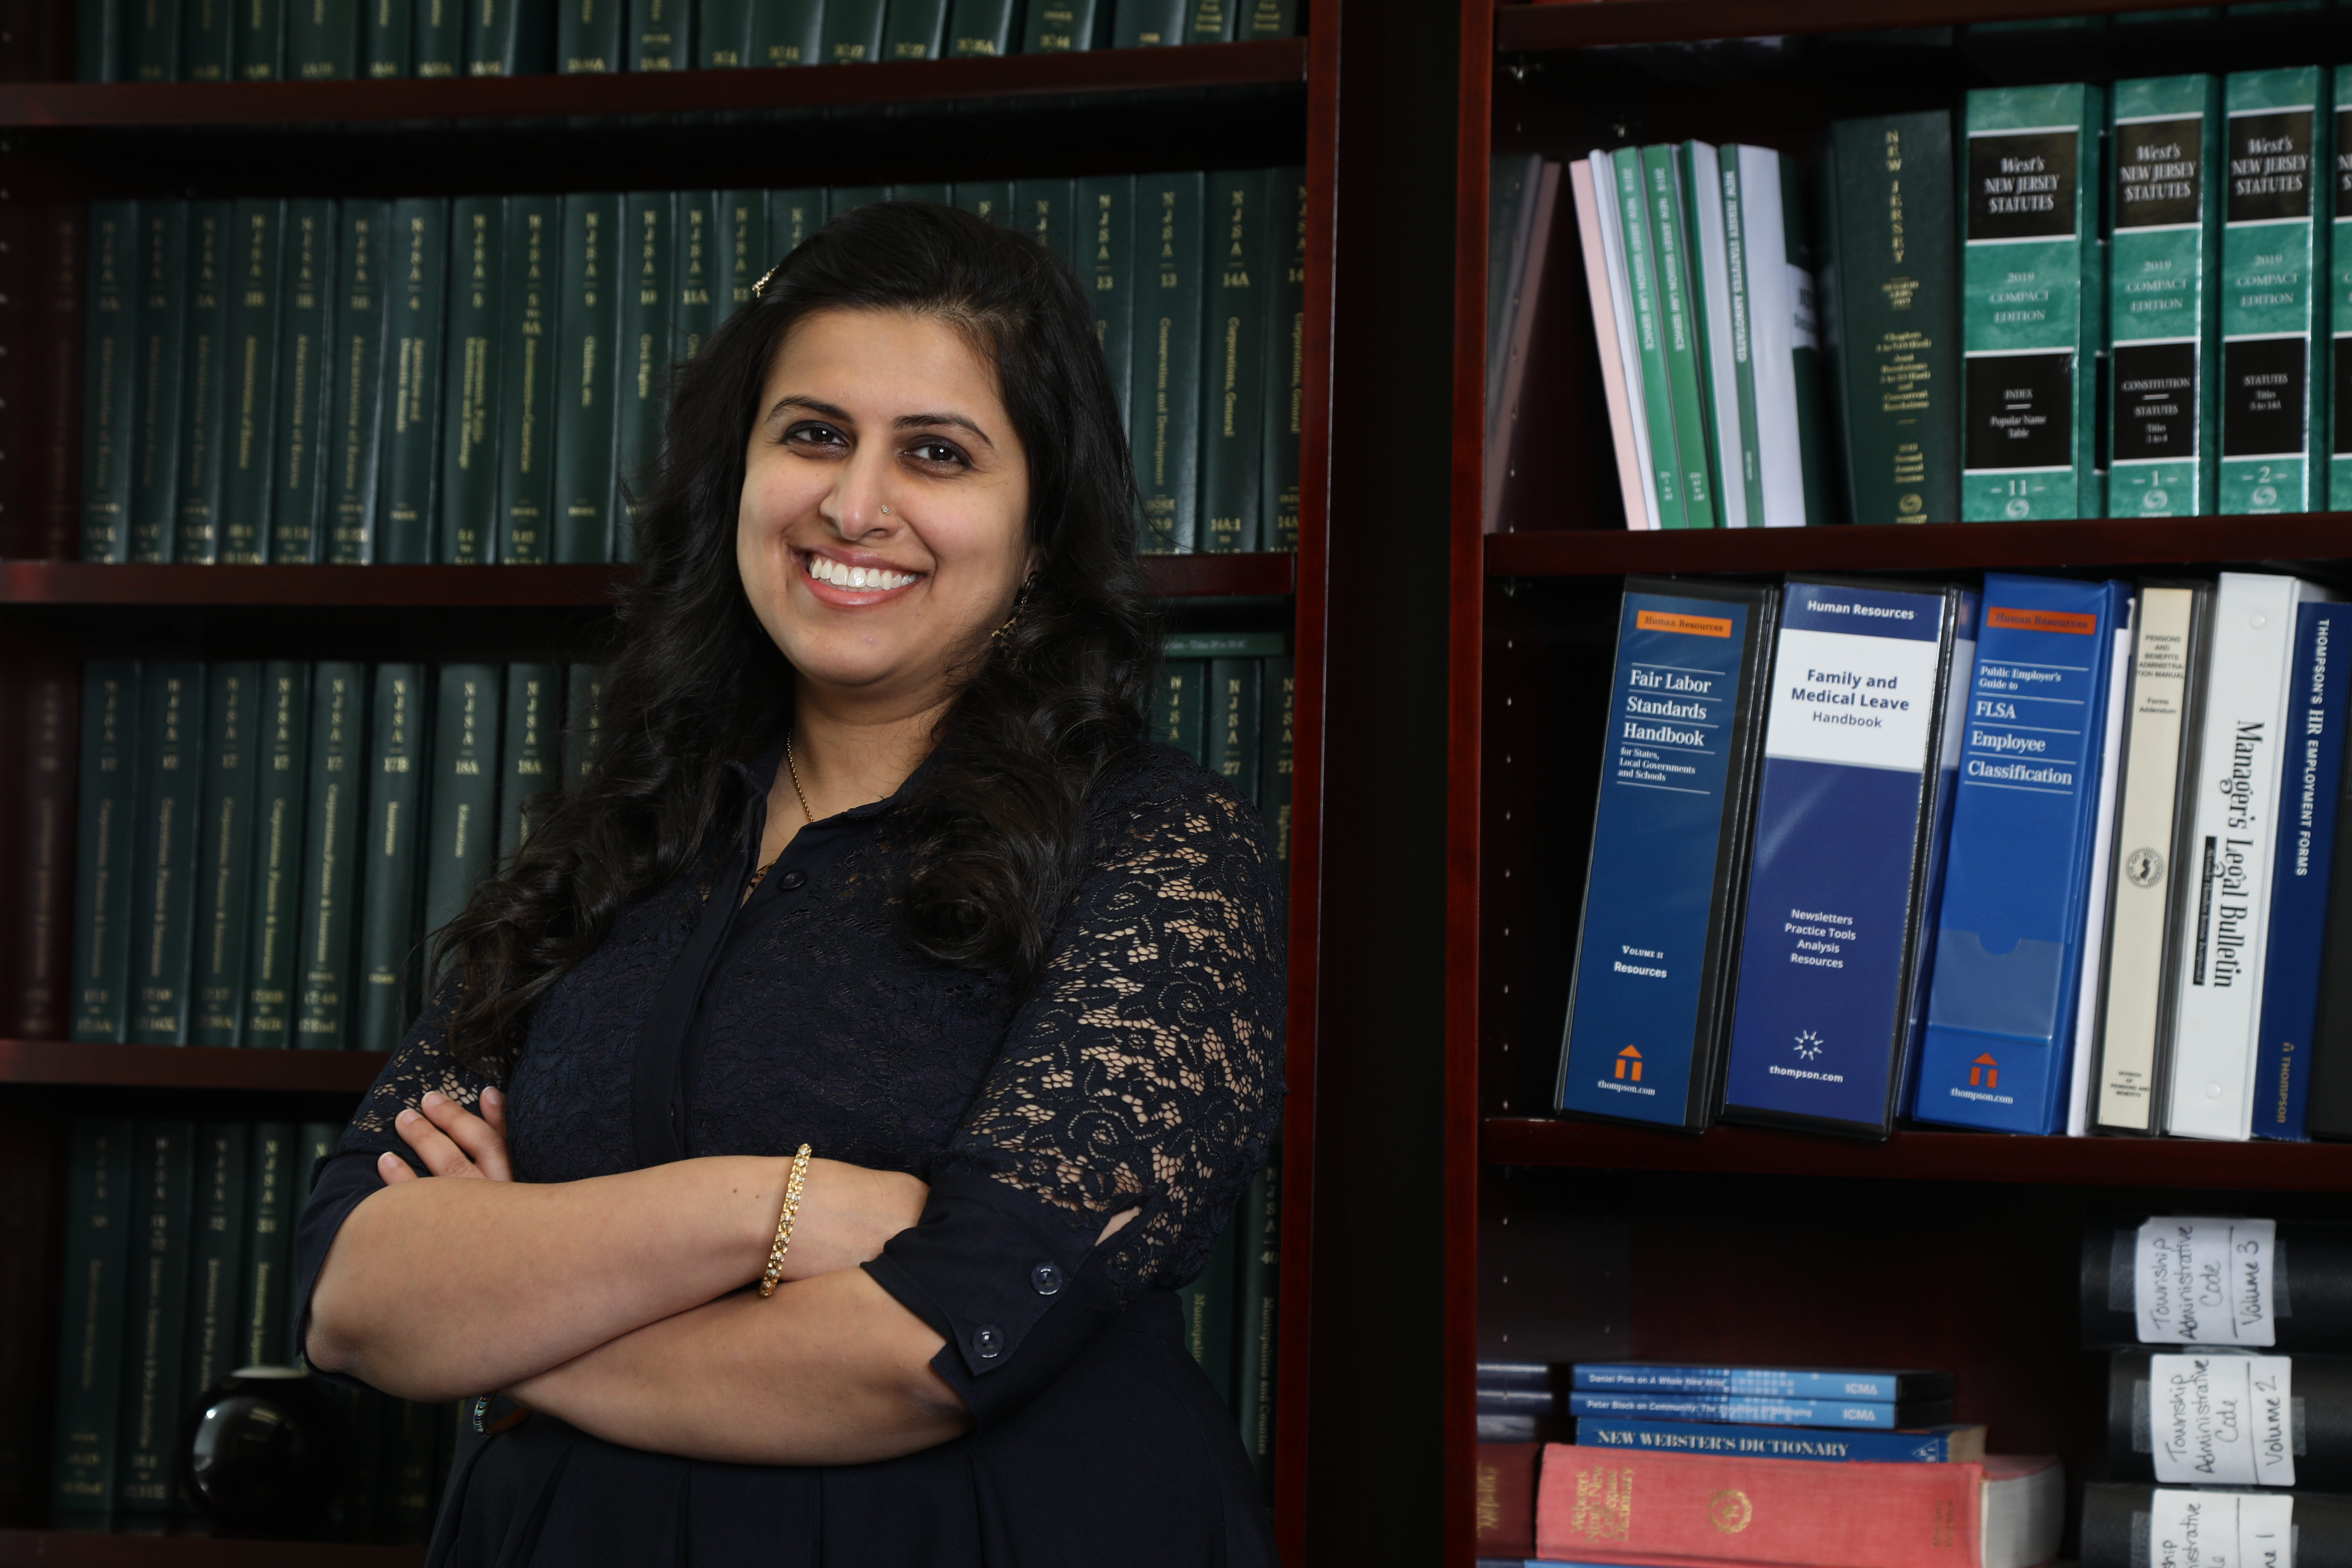 Sadaf Jaffer was mayor of Montgomery, New Jersey, for two years, until she left office on Dec. 31, 2020. When elected, she was the first Muslim woman to serve as a mayor in the U.S.